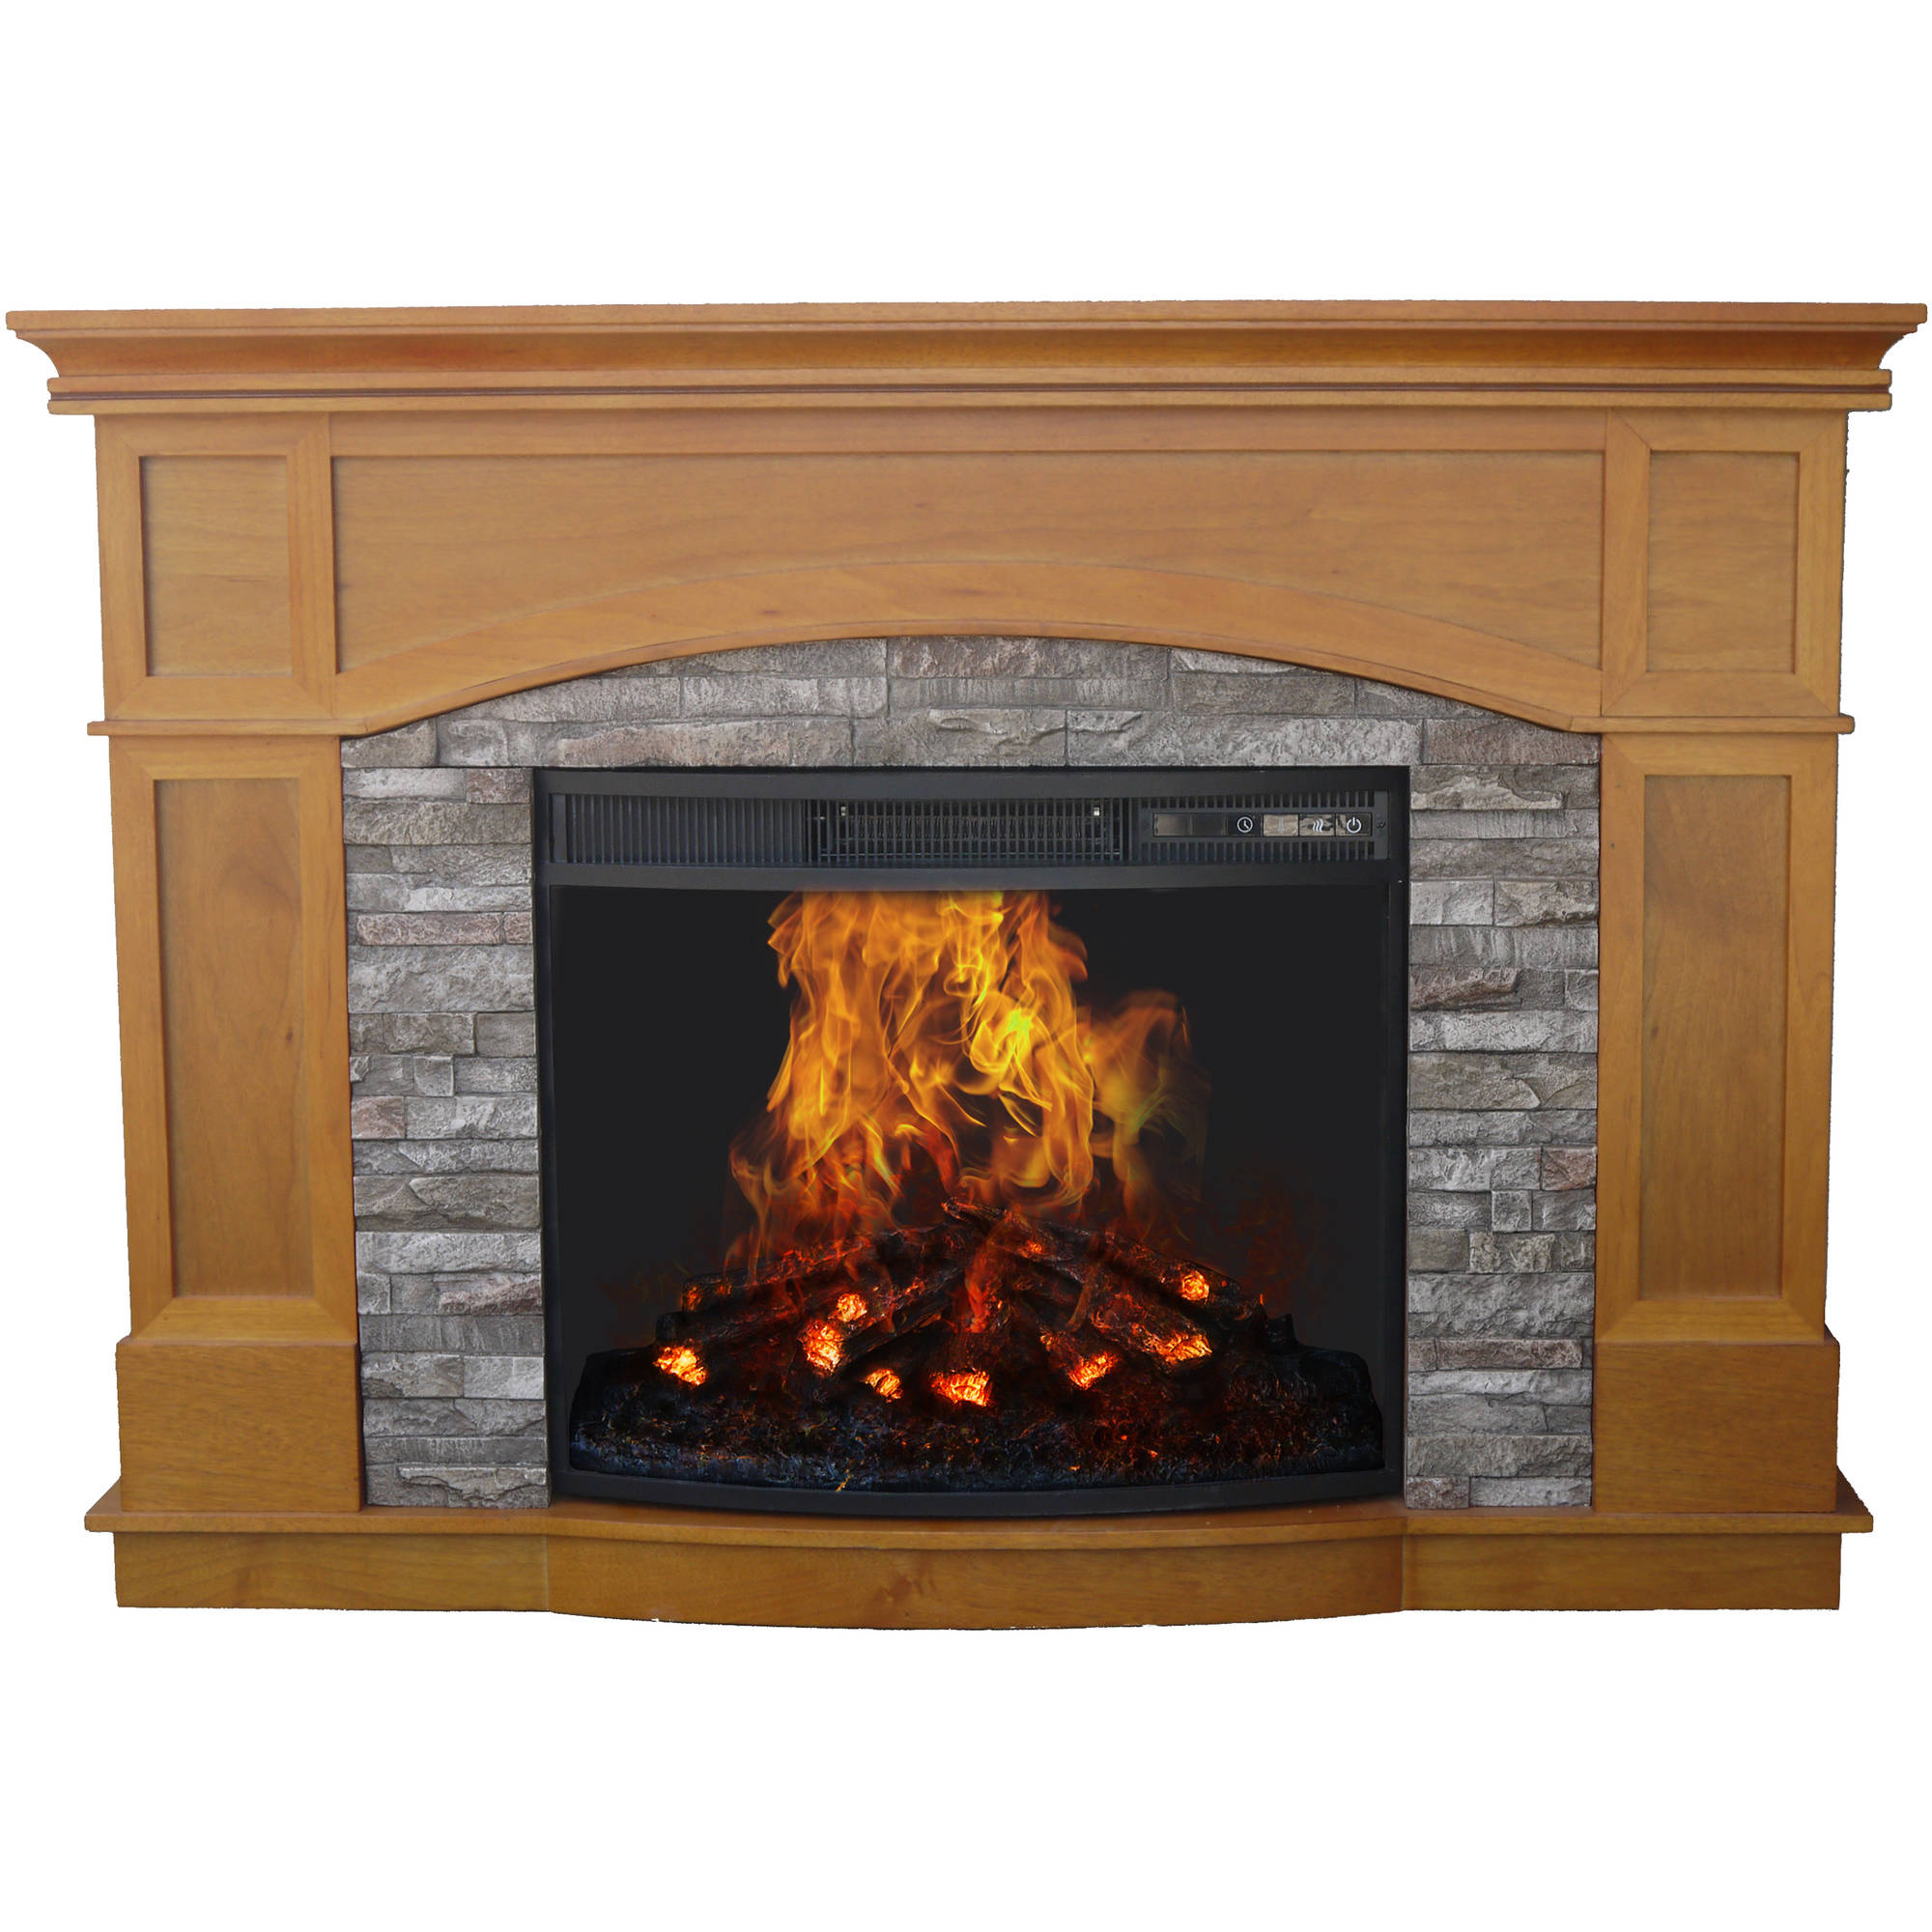 """Decor Flame Electric Fireplace with 50"""" Mantle"""